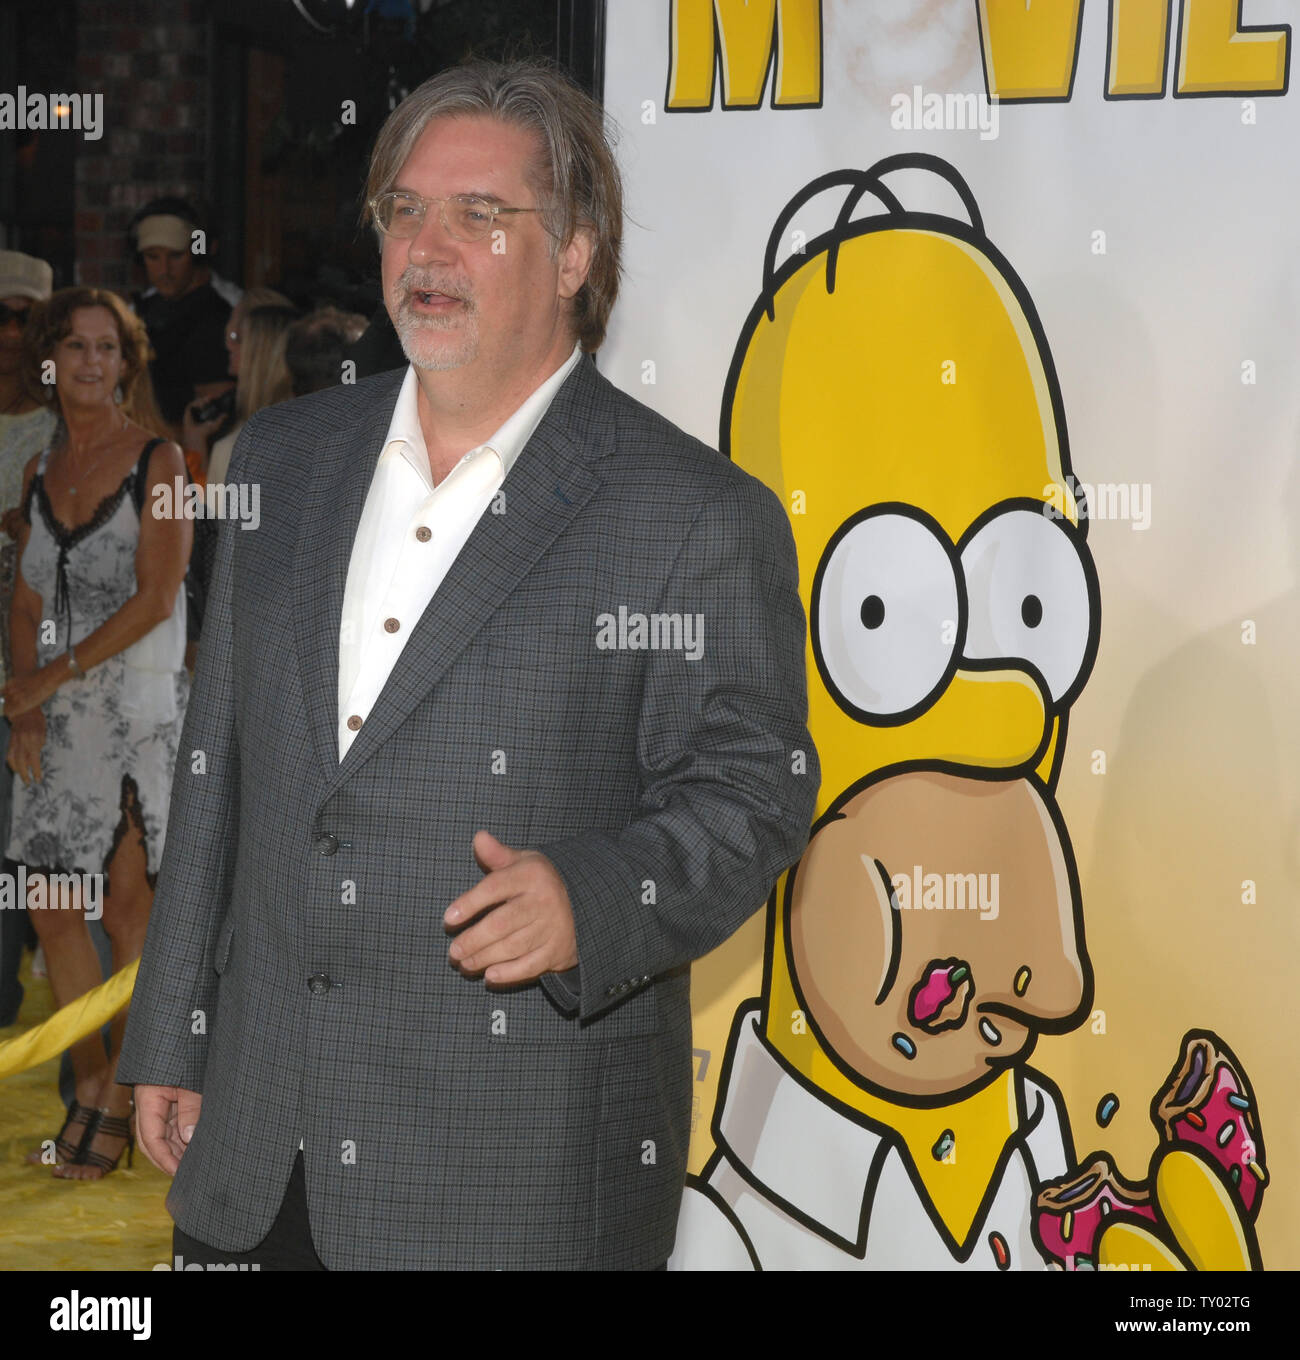 Matt Groening The Creator Of The Television Series The Simpsons Arrives At The Premiere Of The Animated Motion Picture Comedy The Simpsons Movie In The Westwood Section Of Los Angeles On July